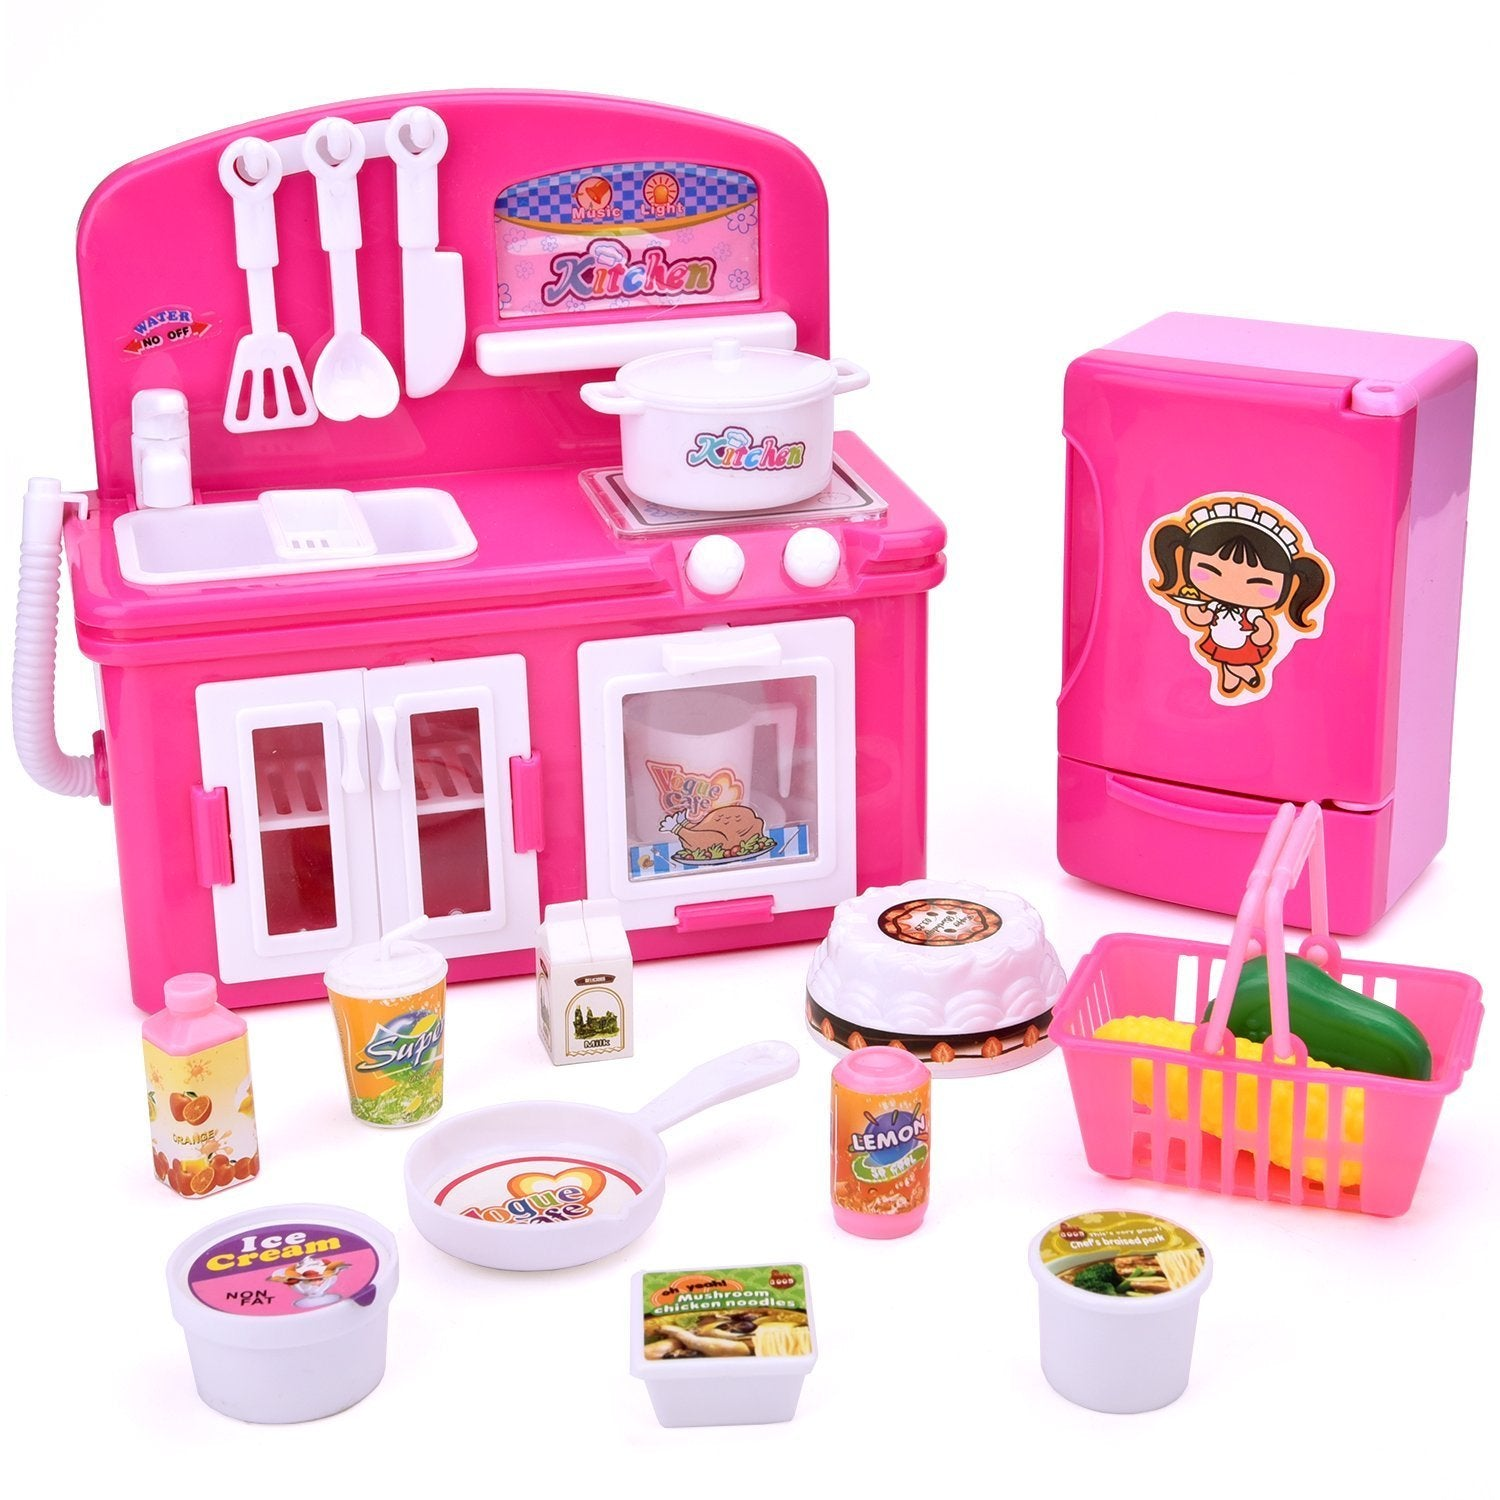 Kids Kitchen Accessories >> Fun Little Toys Kids Kitchen Set For Girls Play Kitchen Accessories Kitchen Appliances